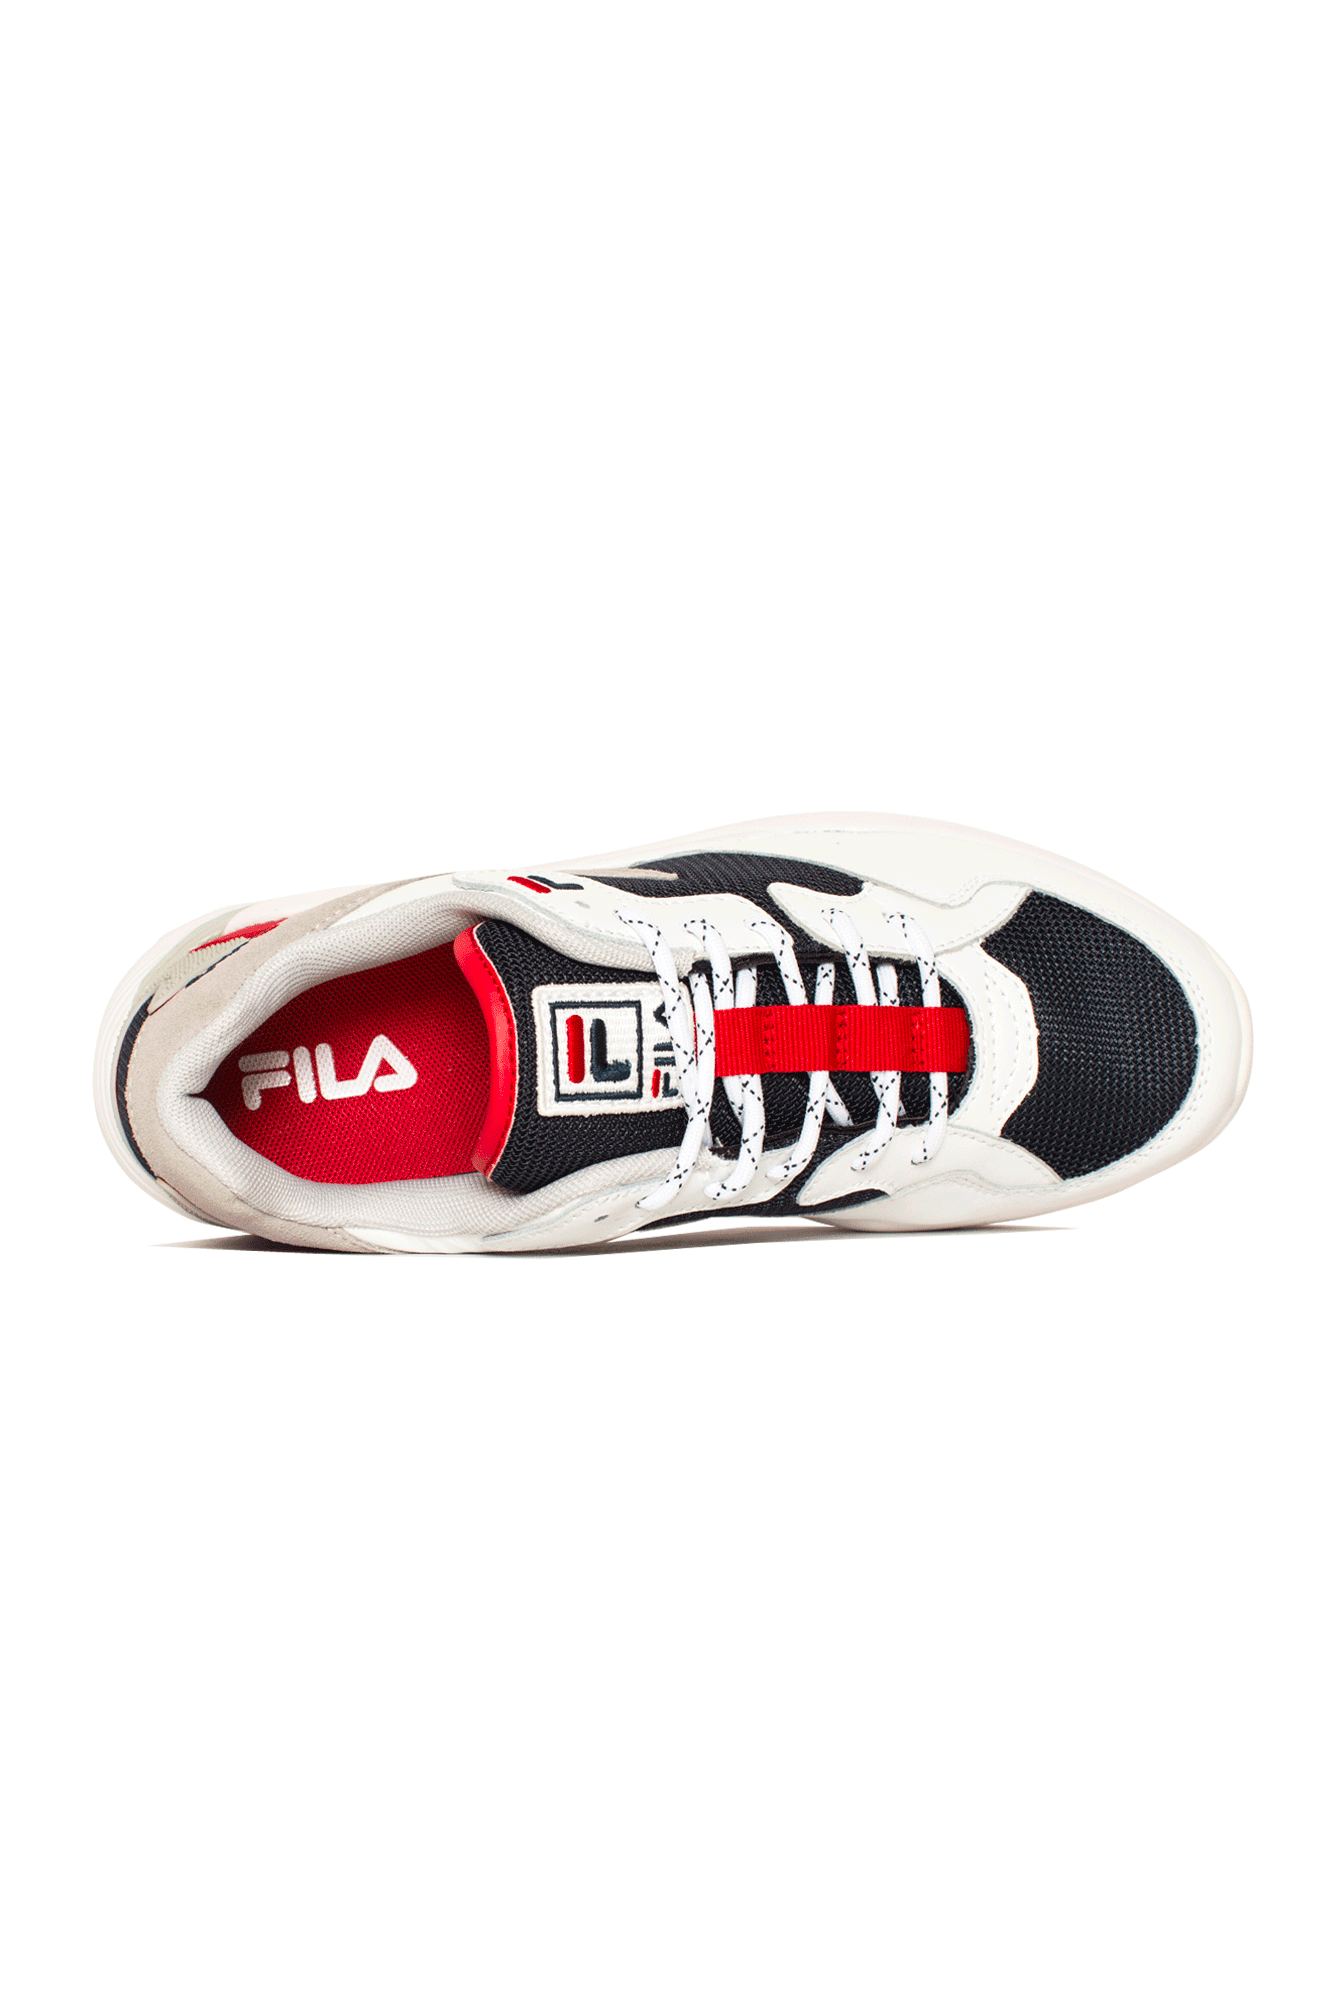 Fila Sneakers Vault CMR Jogger CB Low Bianco 1010588#000#01M#7,5 - One Block Down